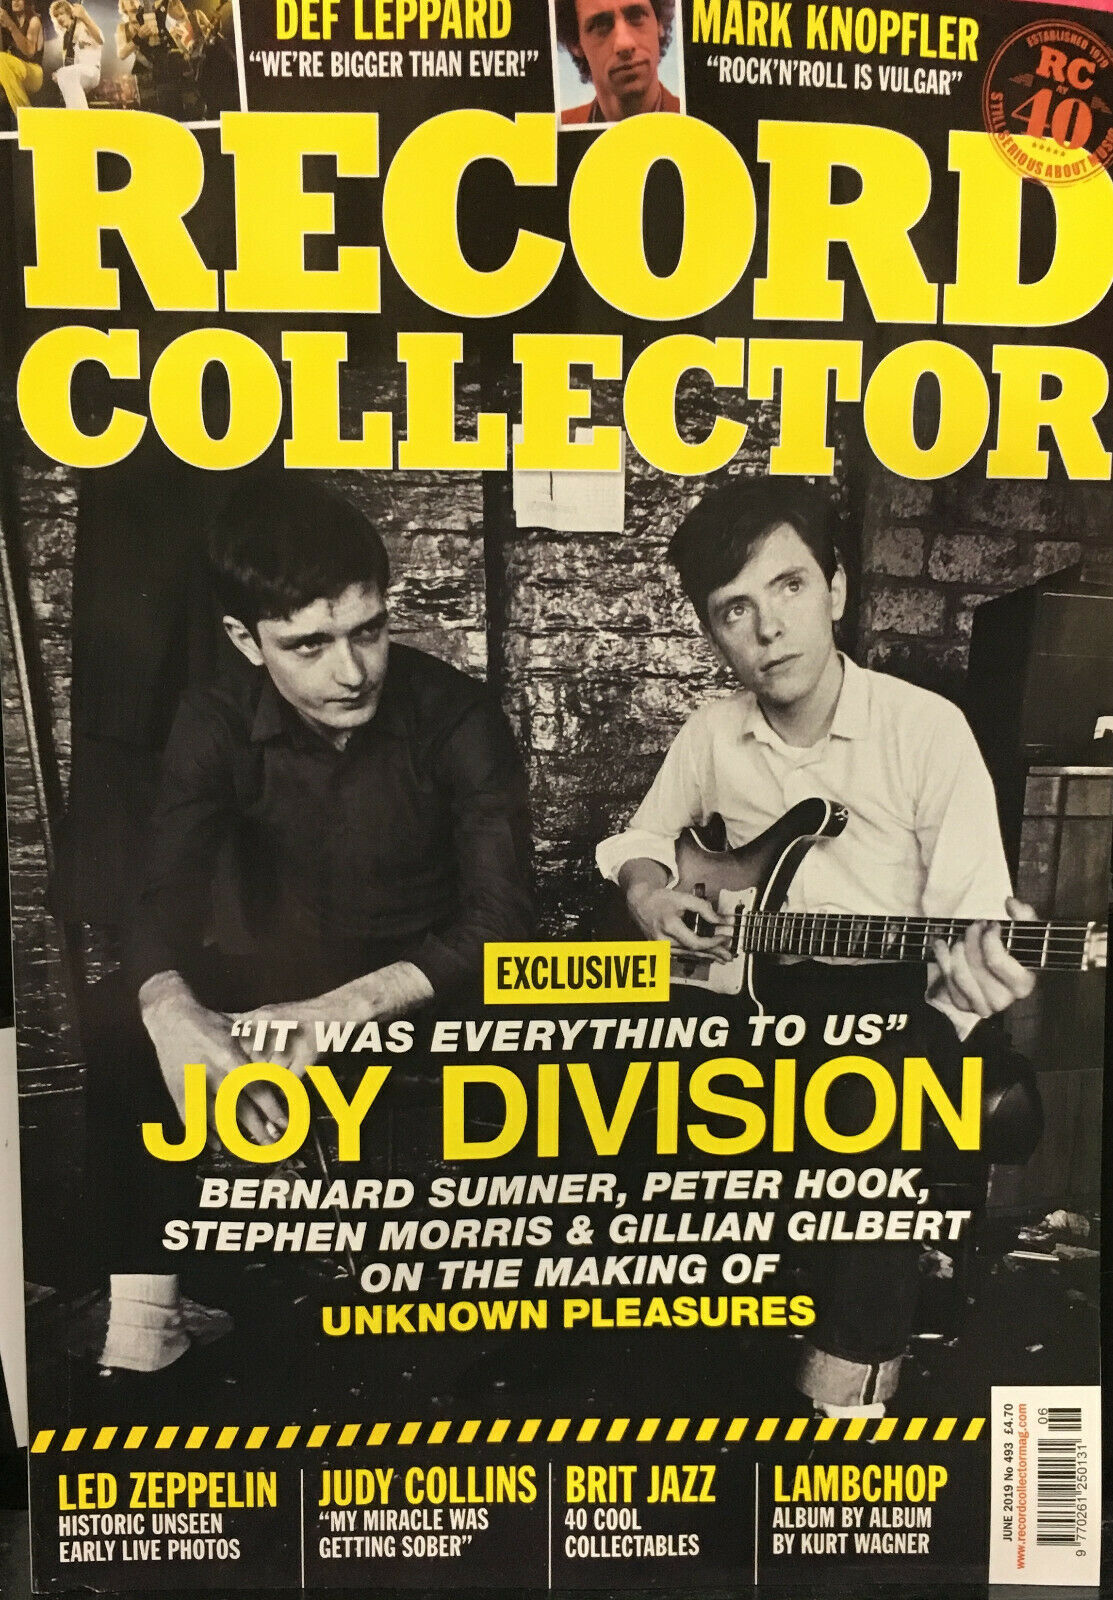 RECORD COLLECTOR Magazine June 2019 JOY DIVISION DEF LEPPARD MARK KNOPFLER